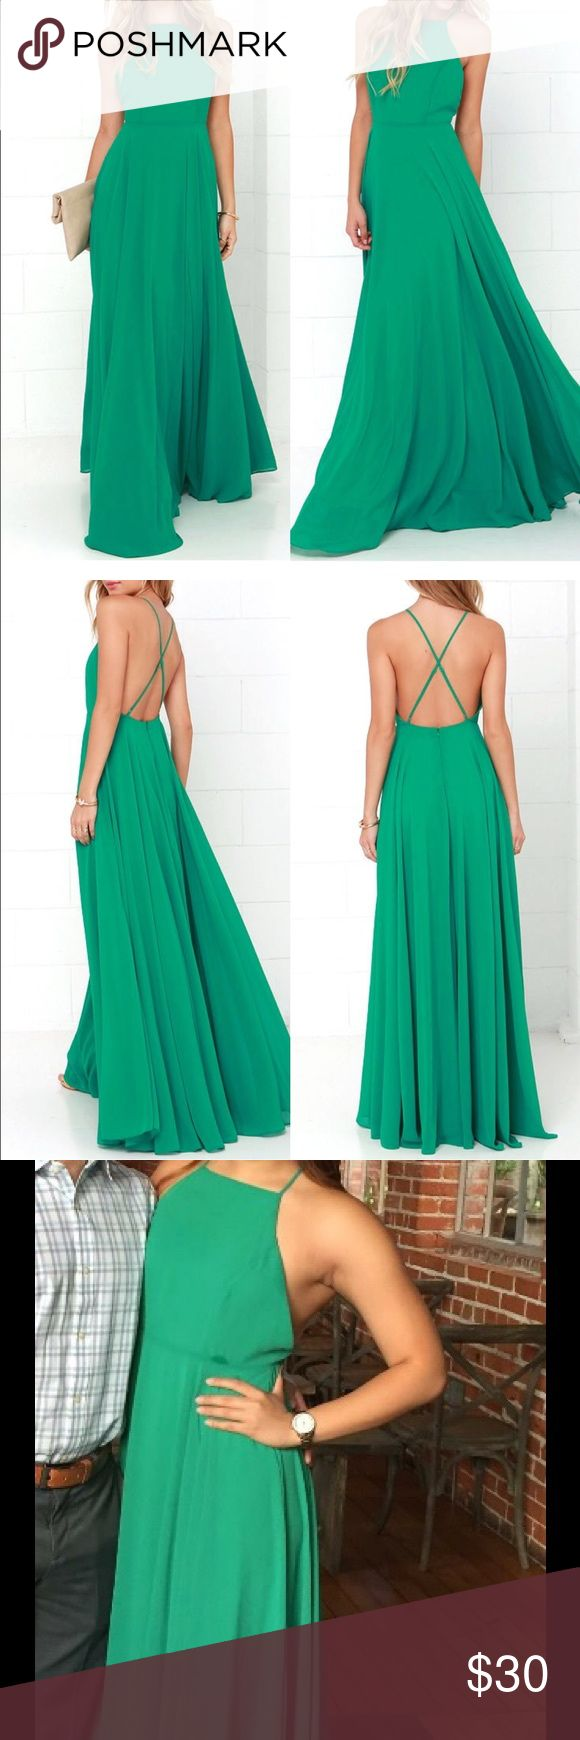 "Green Maxi Dress (Lulu's) MYTHICAL KIND OF LOVE GREEN MAXI DRESS, such a beautiful green color, worn once for a wedding, already dry cleaned and ready to ship! This dress comes very long-- I got it hemmed. I'm about 5'5"" and wore 3inch heels and it was the perfect length. Lulu's Dresses Maxi"